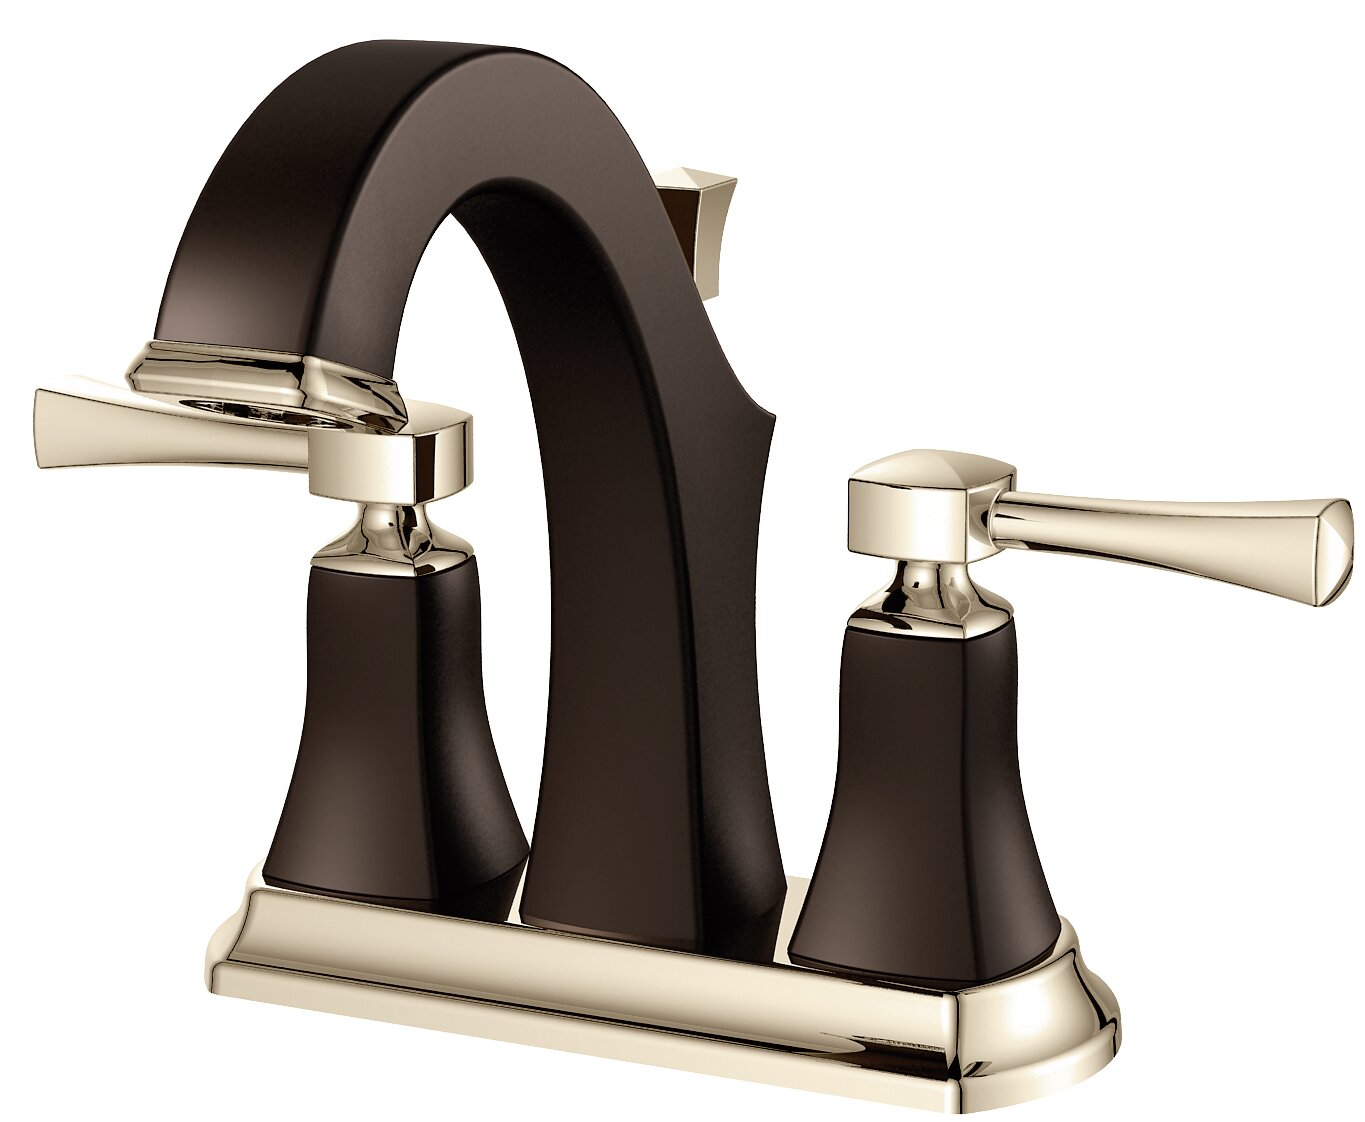 Bathroom Faucets.Ucore Centerset Bathroom Faucet With Drain Assembly Reviews